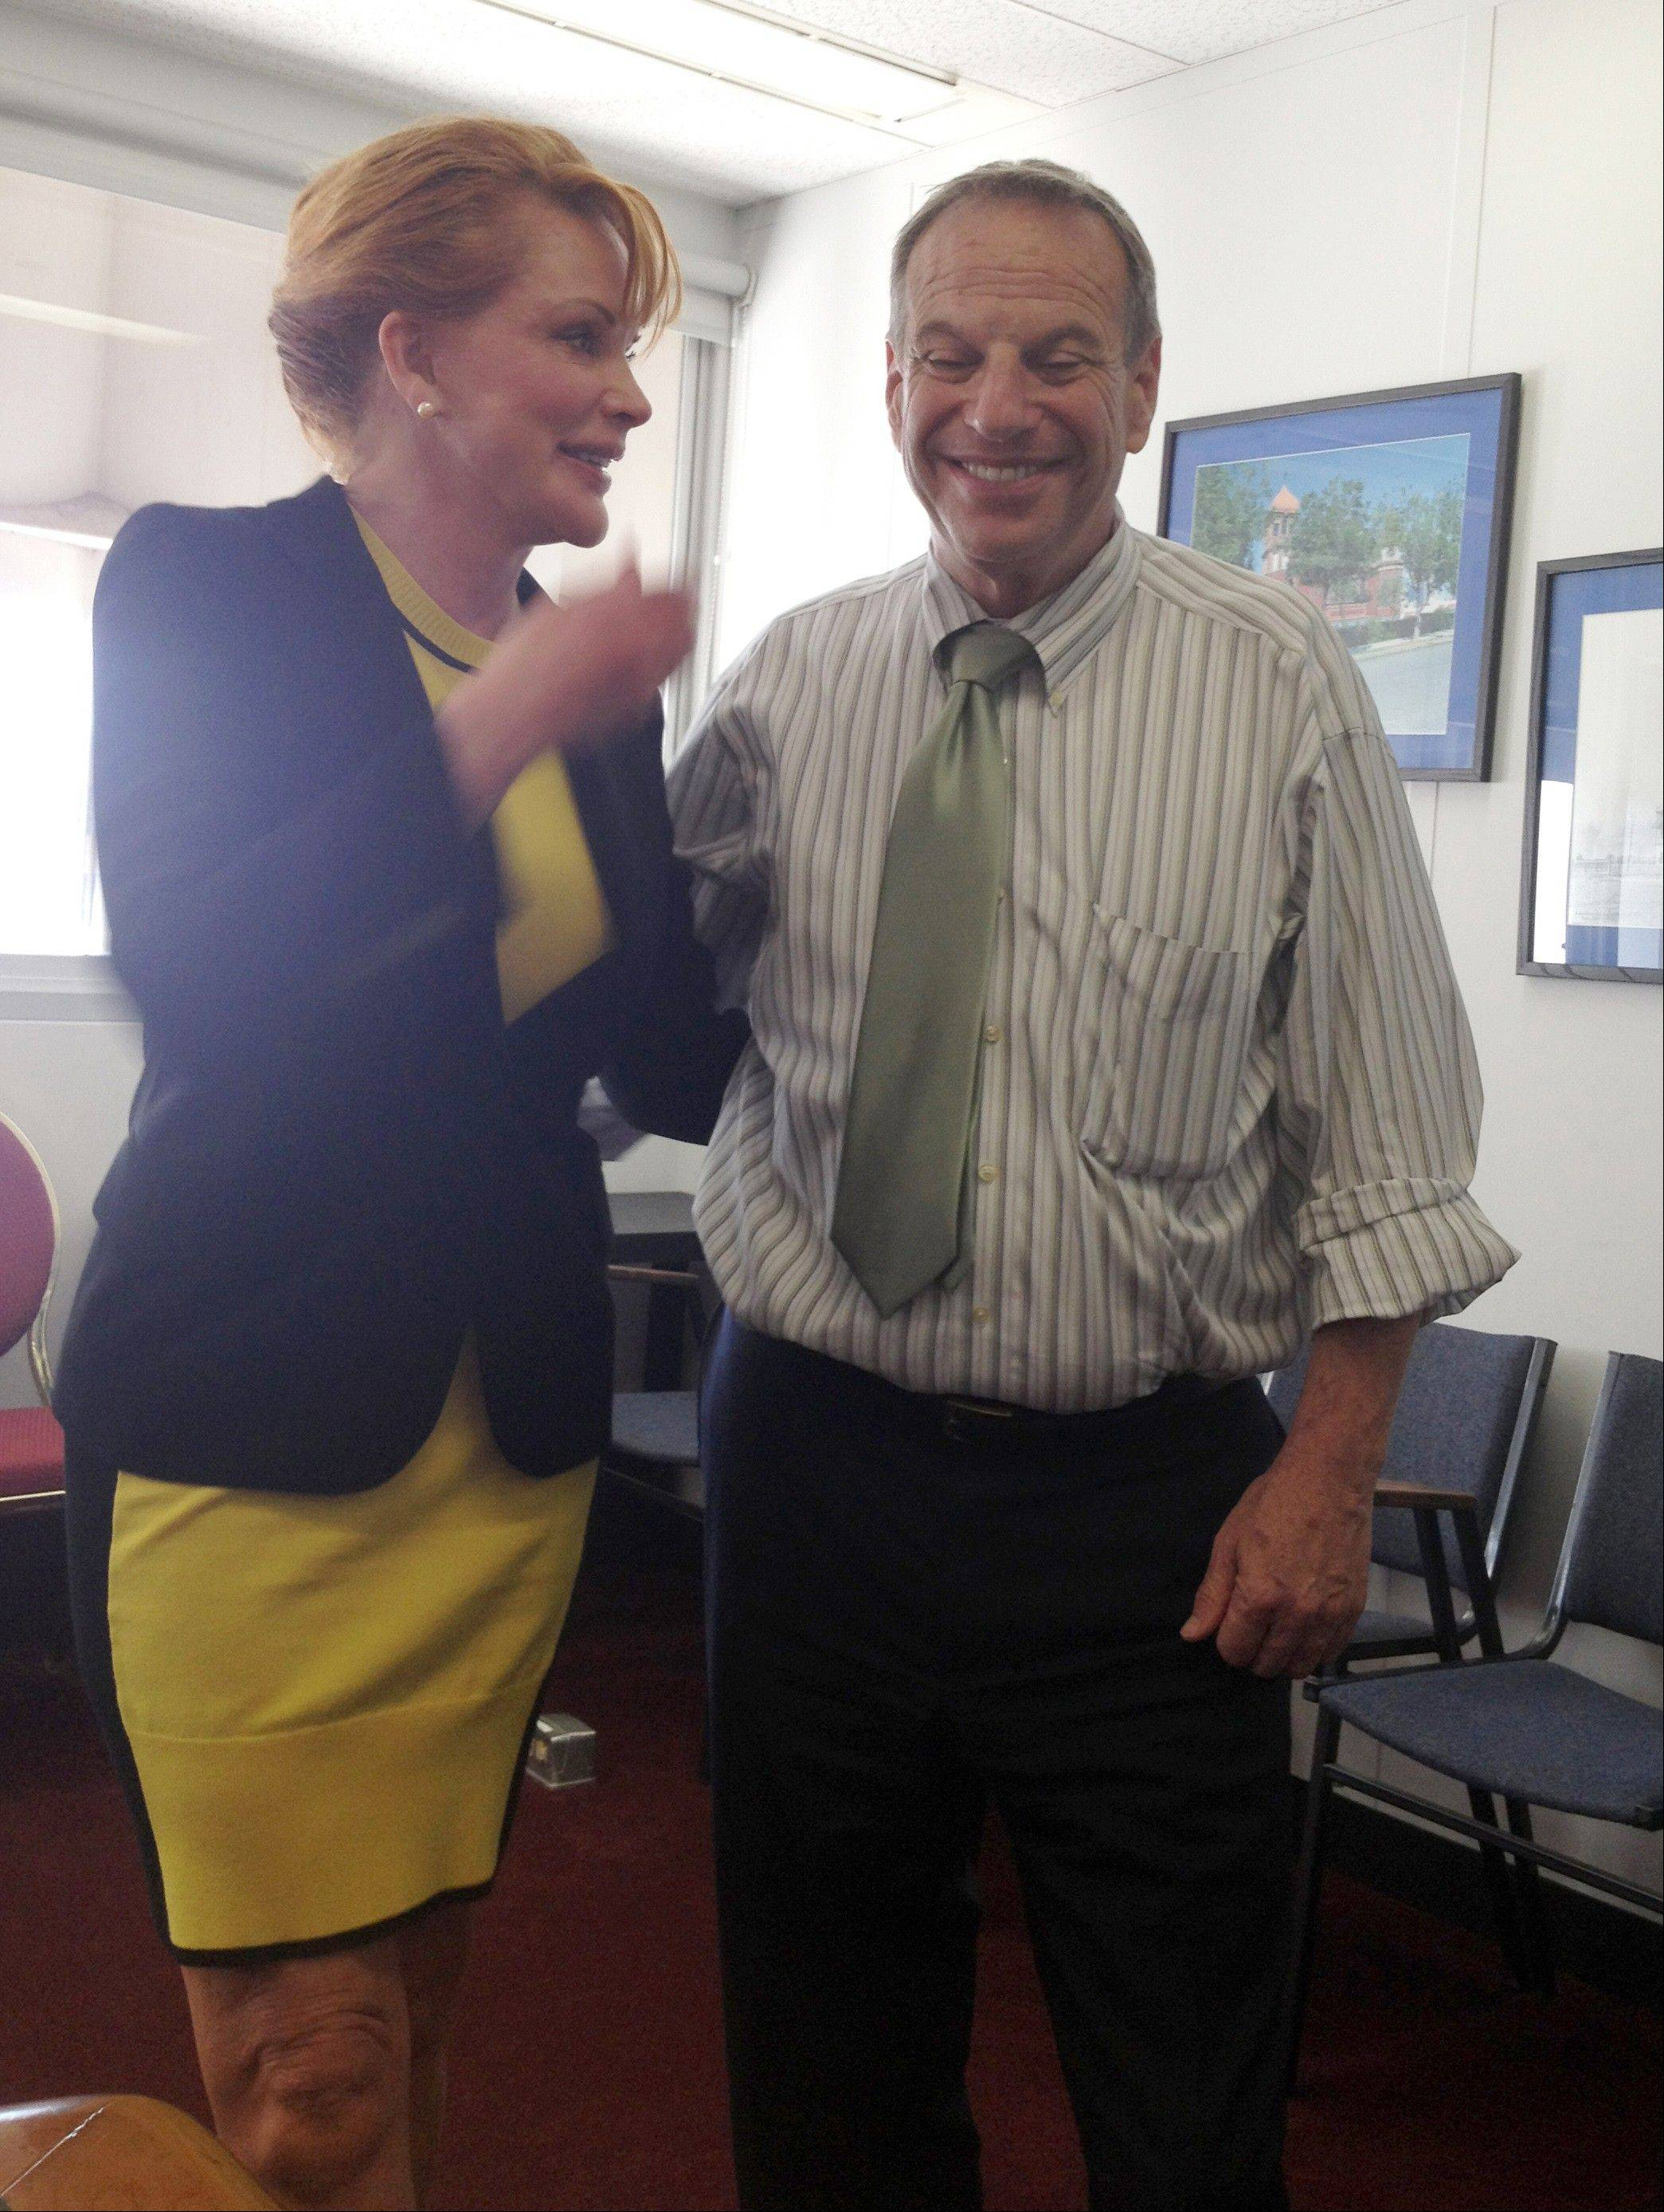 Dianne York is photographed with San Diego Mayor Bob Filner in a conference room adjacent to the mayor�s office in San Diego. York first came forward to say that Filner put his hands on her buttocks while this photo was being taken following a meeting in his office.